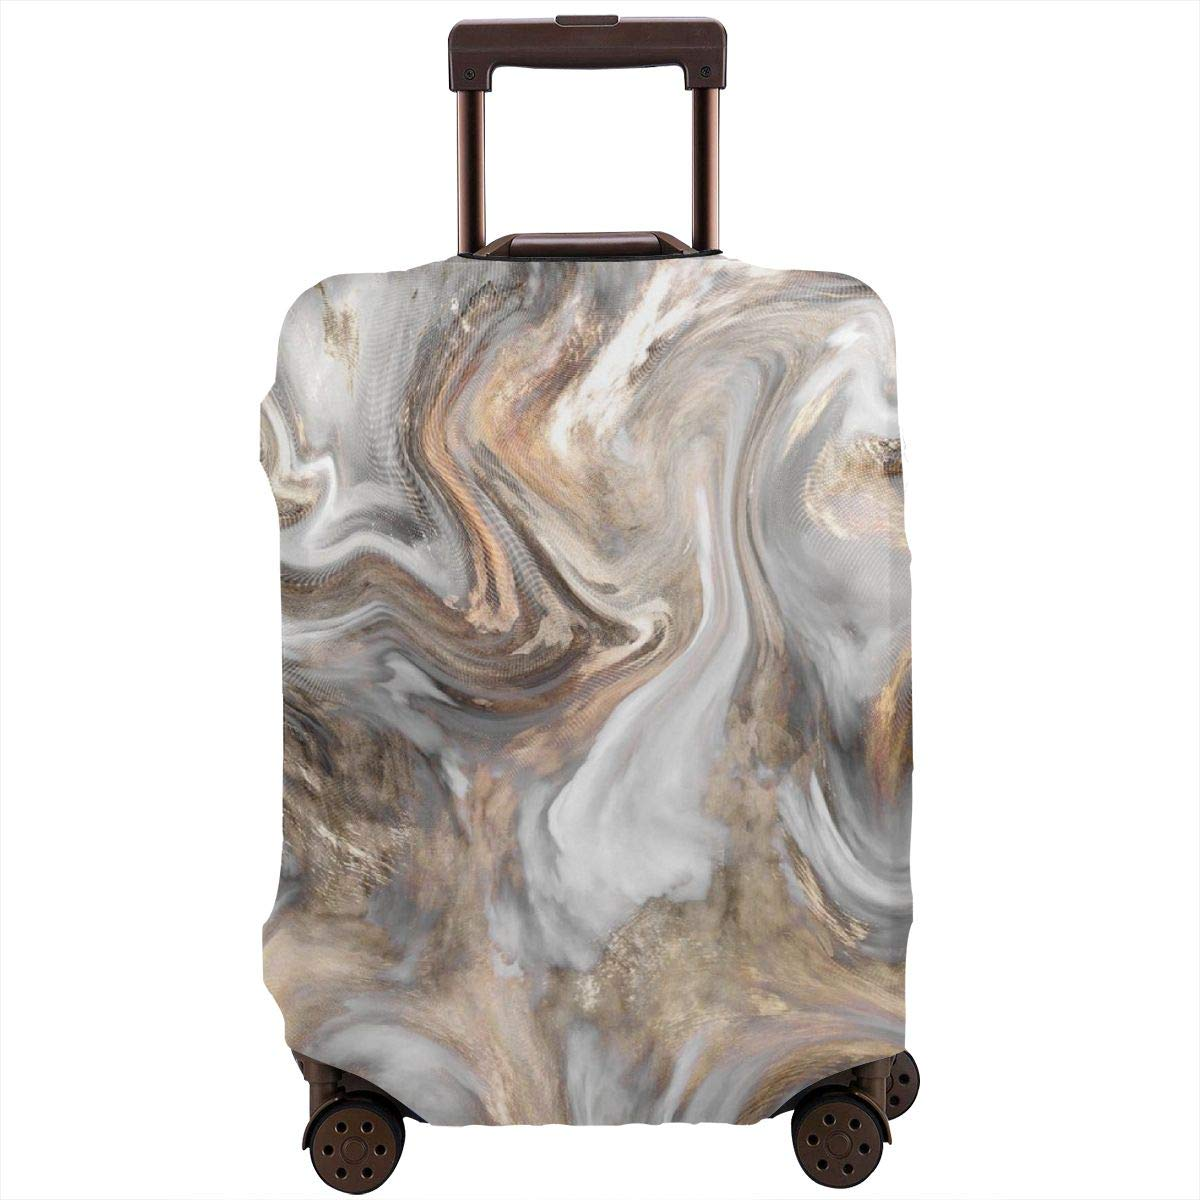 Luggage Cover Marble Retro Style Marbling Golden Protective Travel Trunk Case Elastic Luggage Suitcase Protector Cover